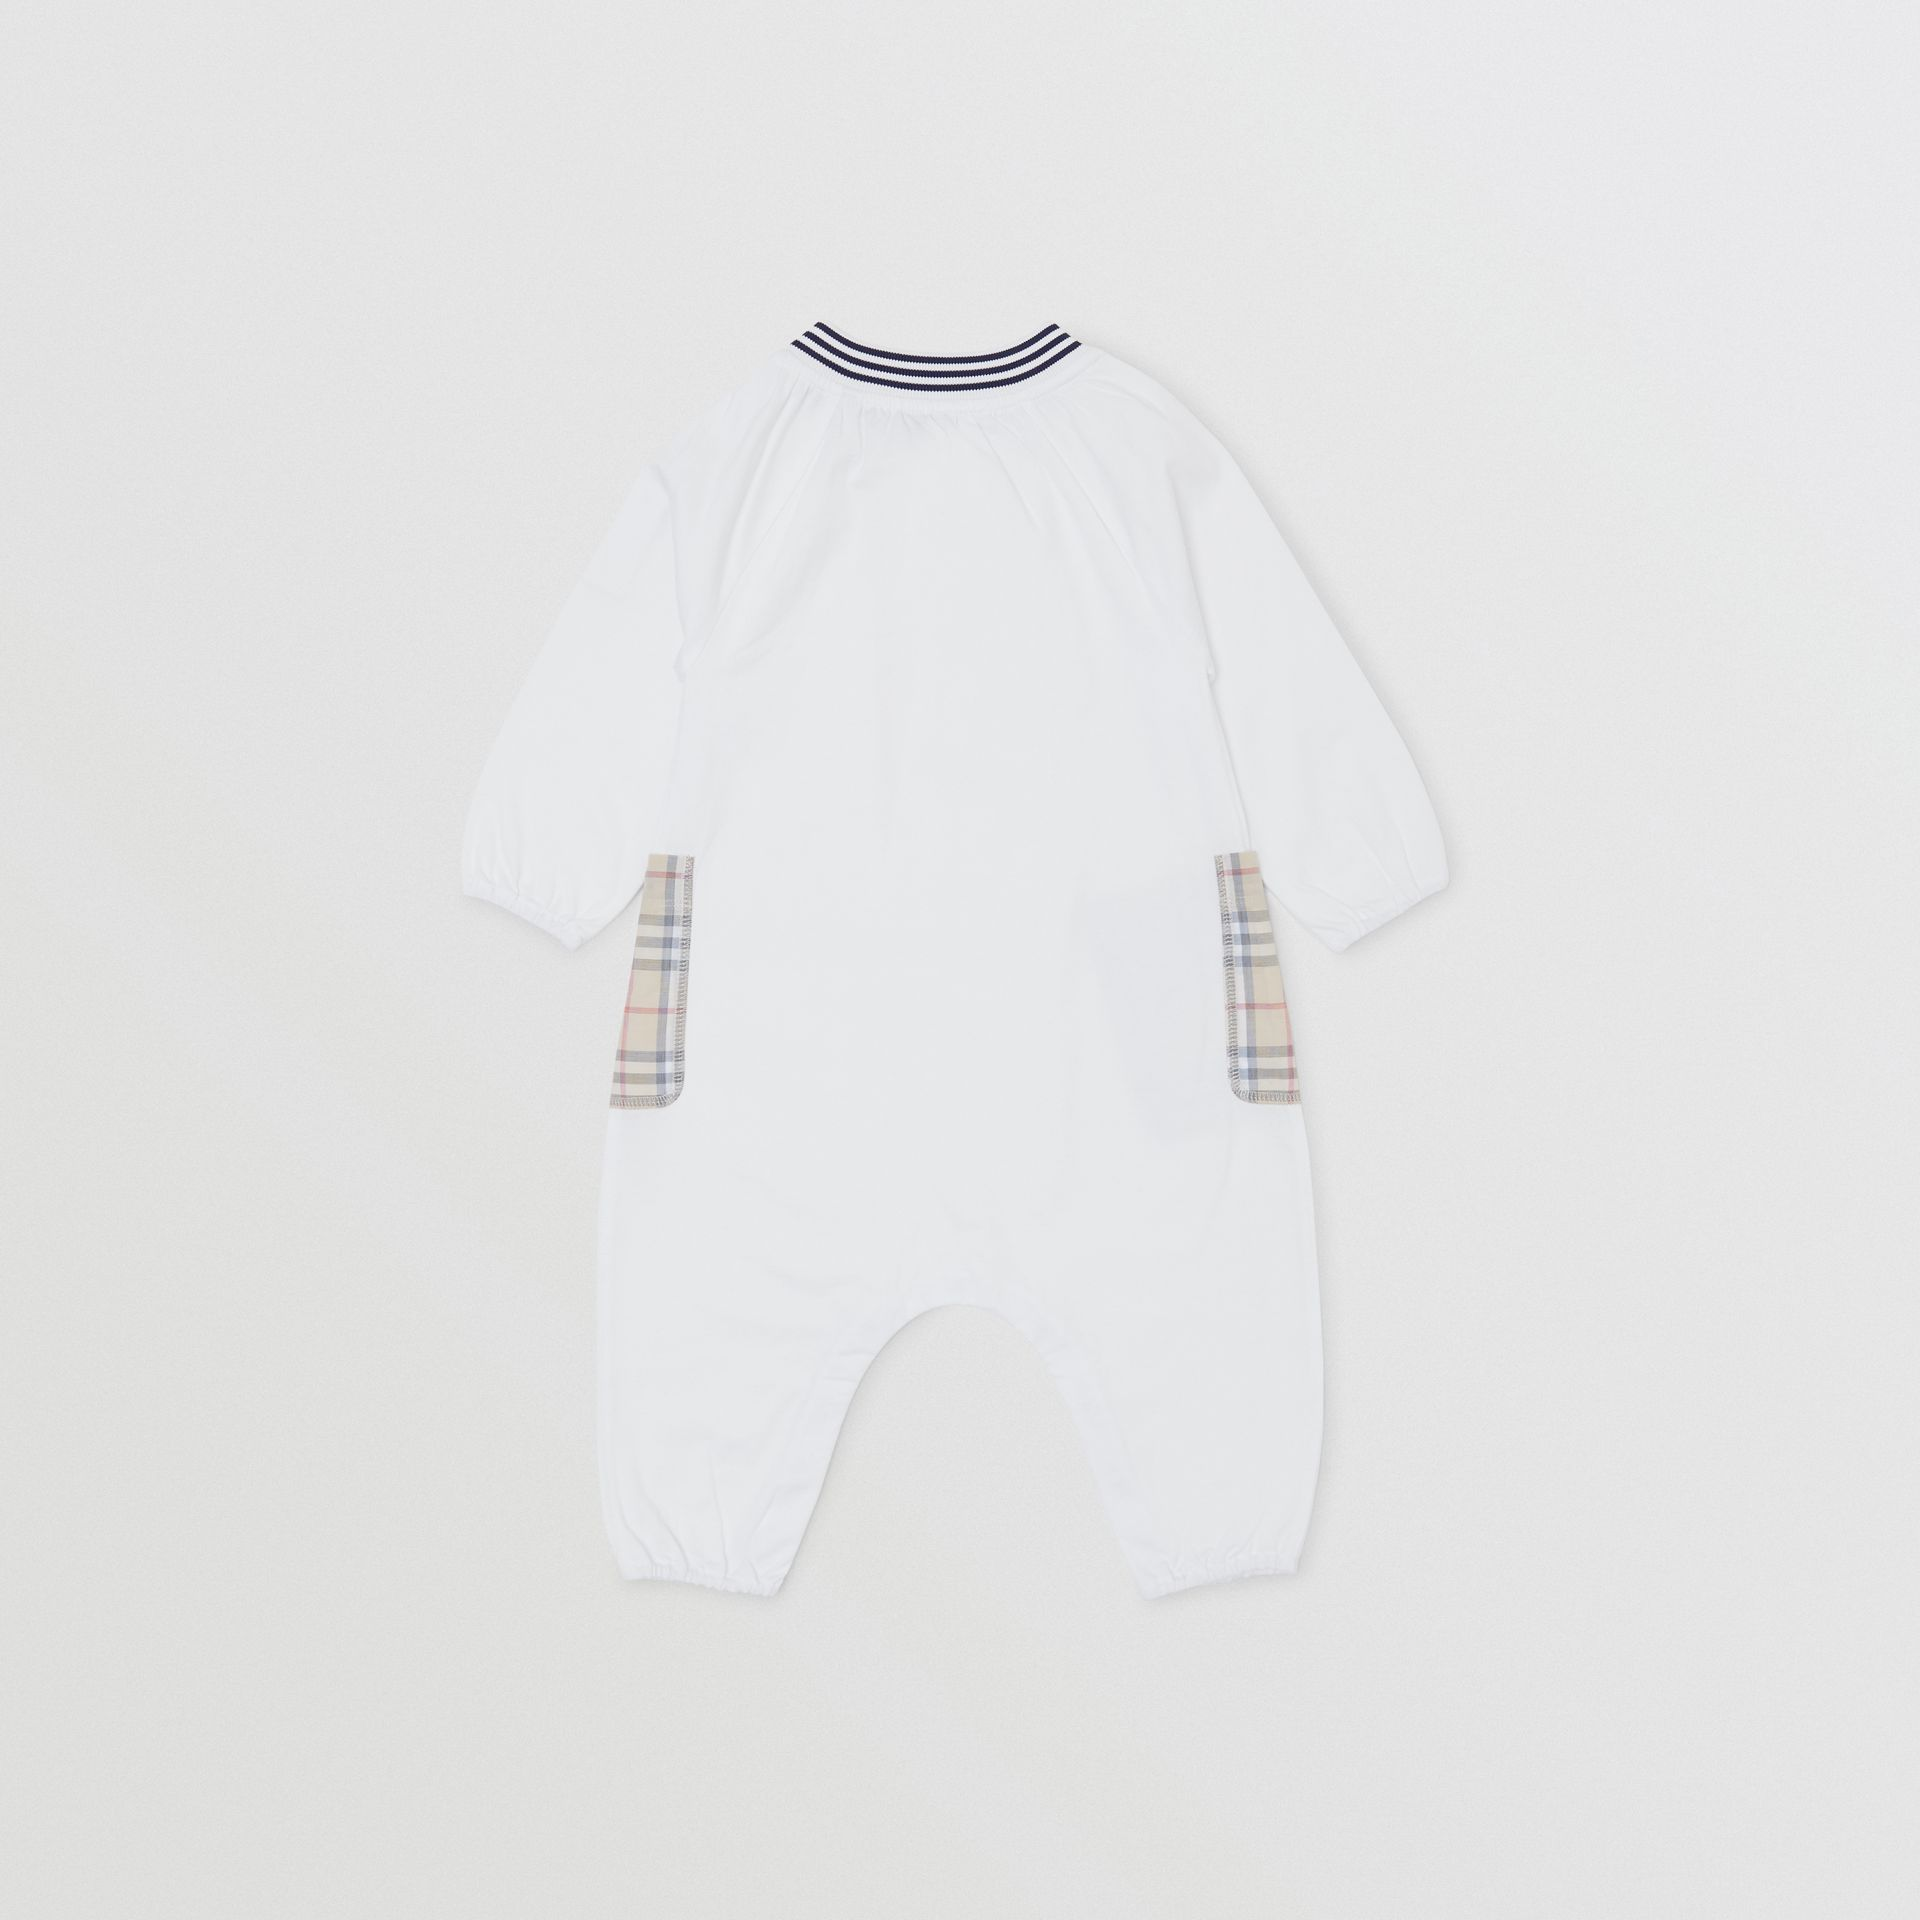 Star Print Check Trim Cotton Jumpsuit in White - Children | Burberry Hong Kong S.A.R - gallery image 3